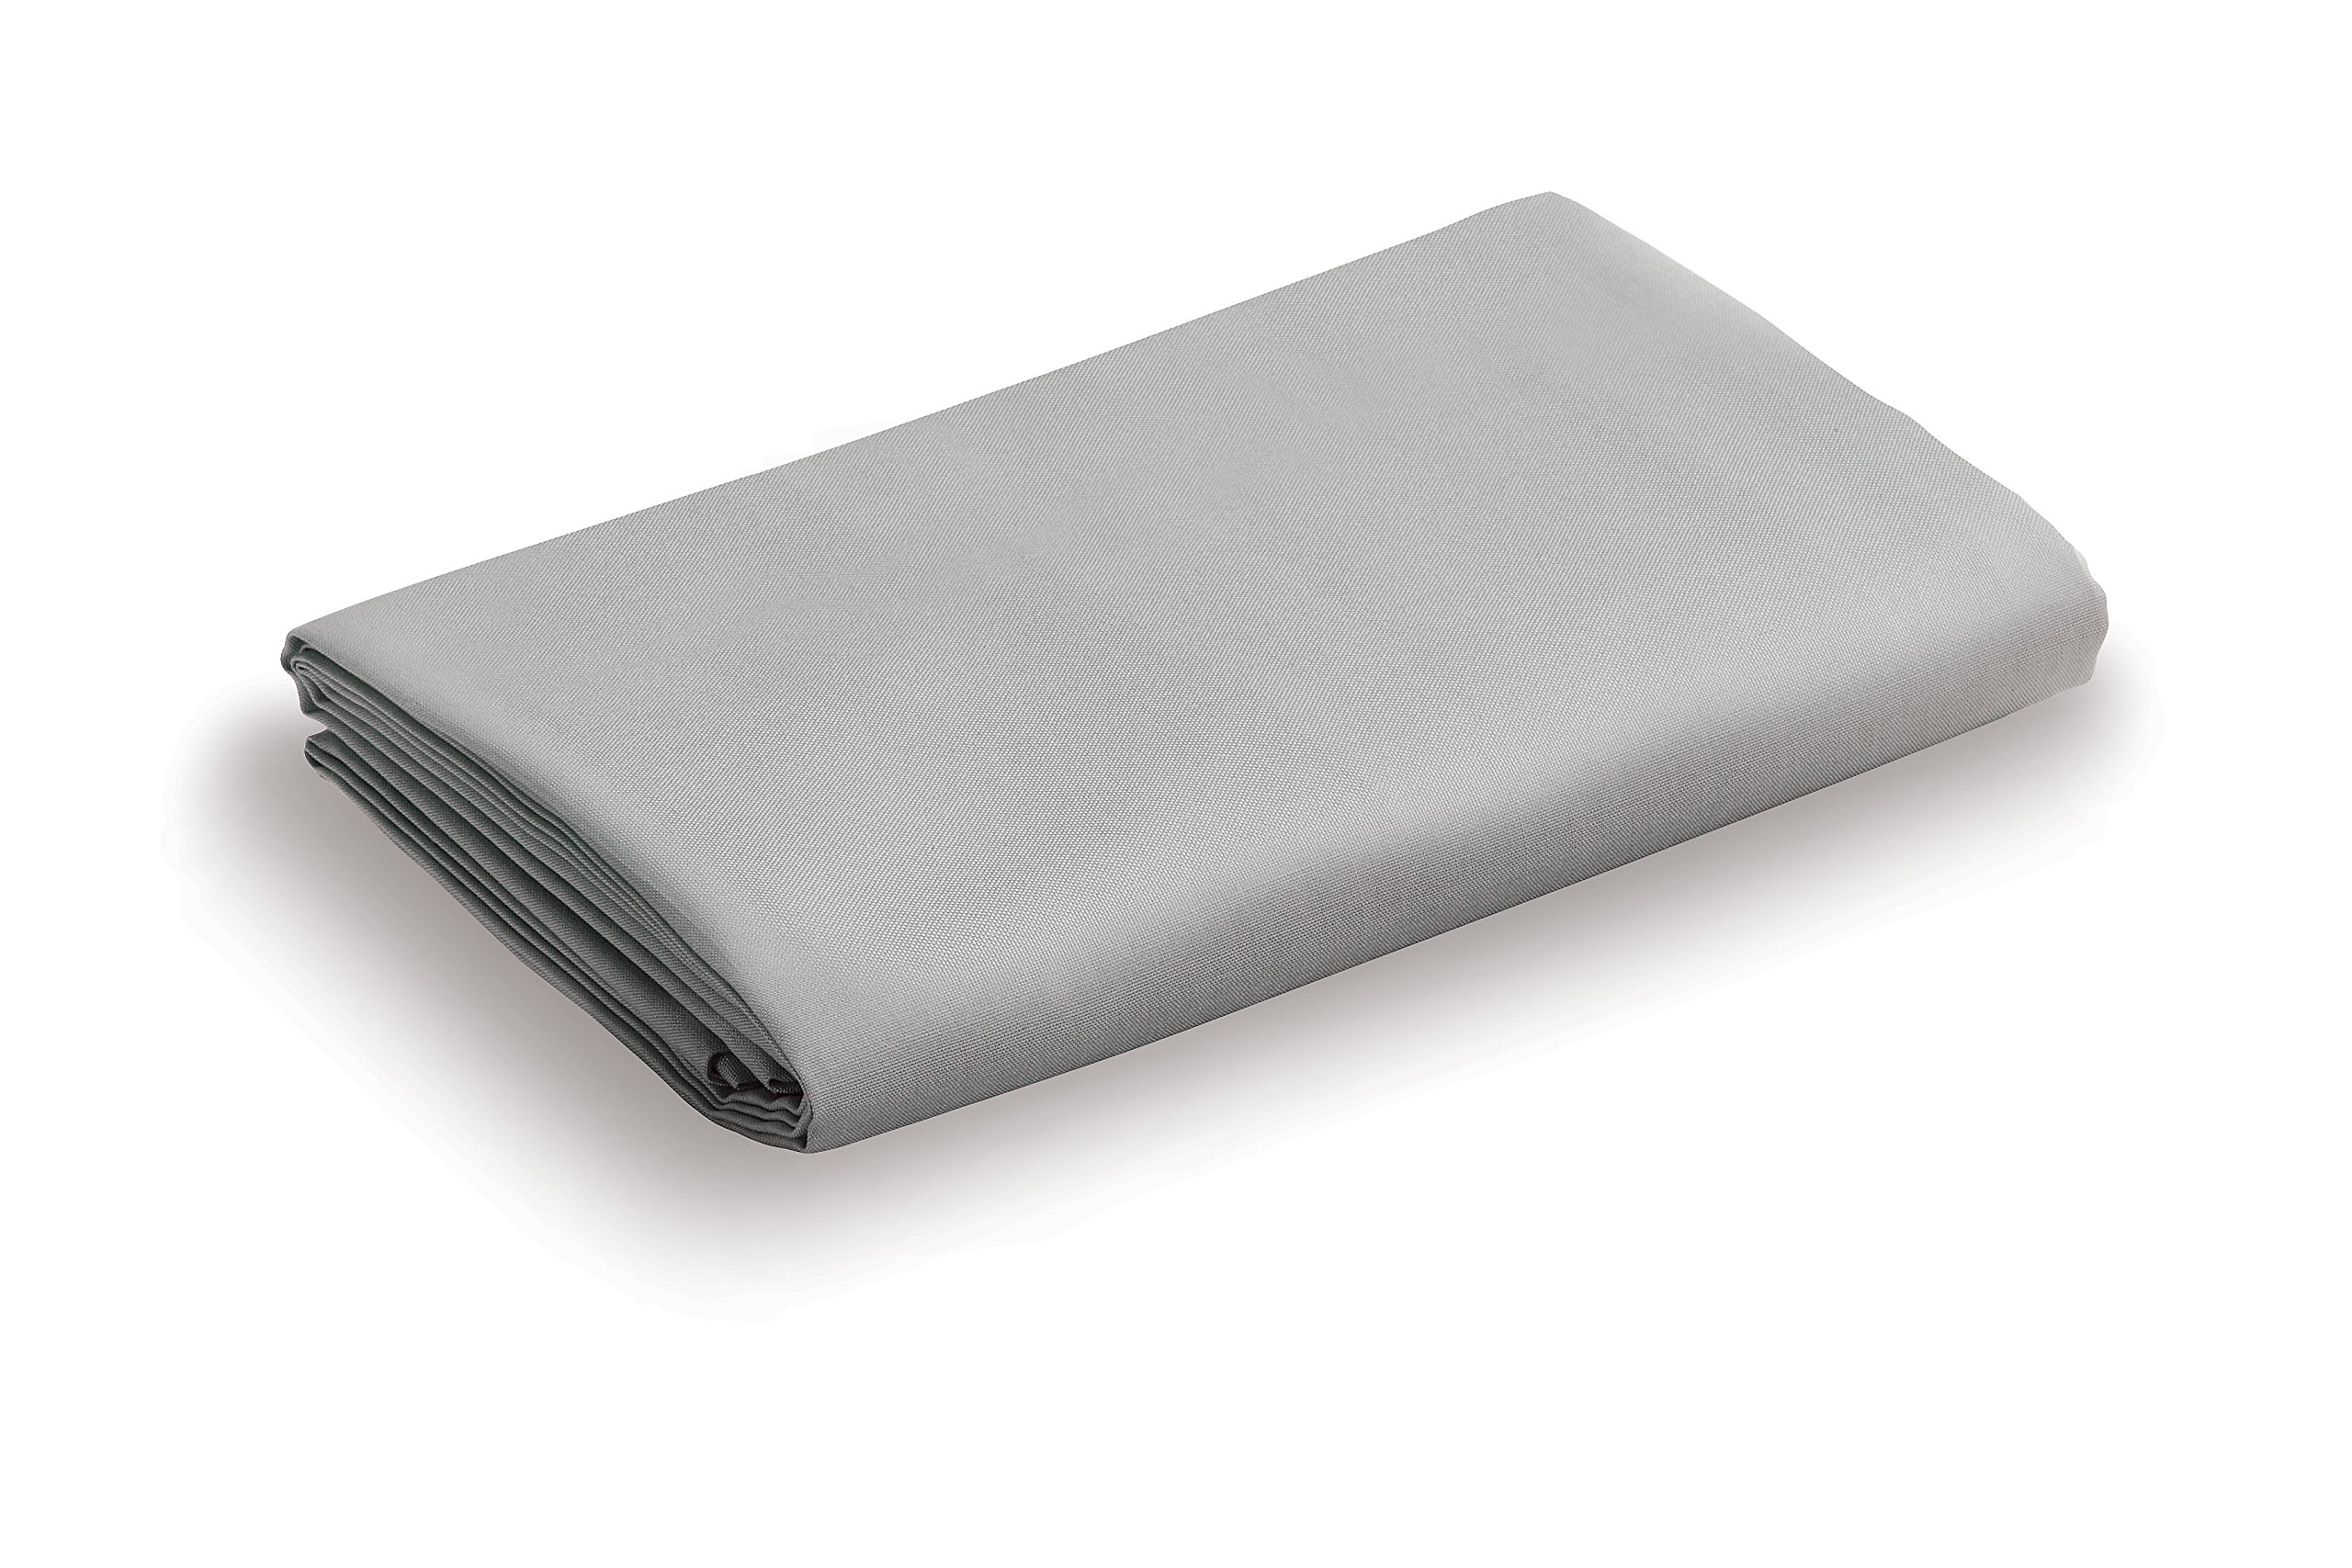 Pack 'n Play Quick Connect Playard Sheet, Stone Gray